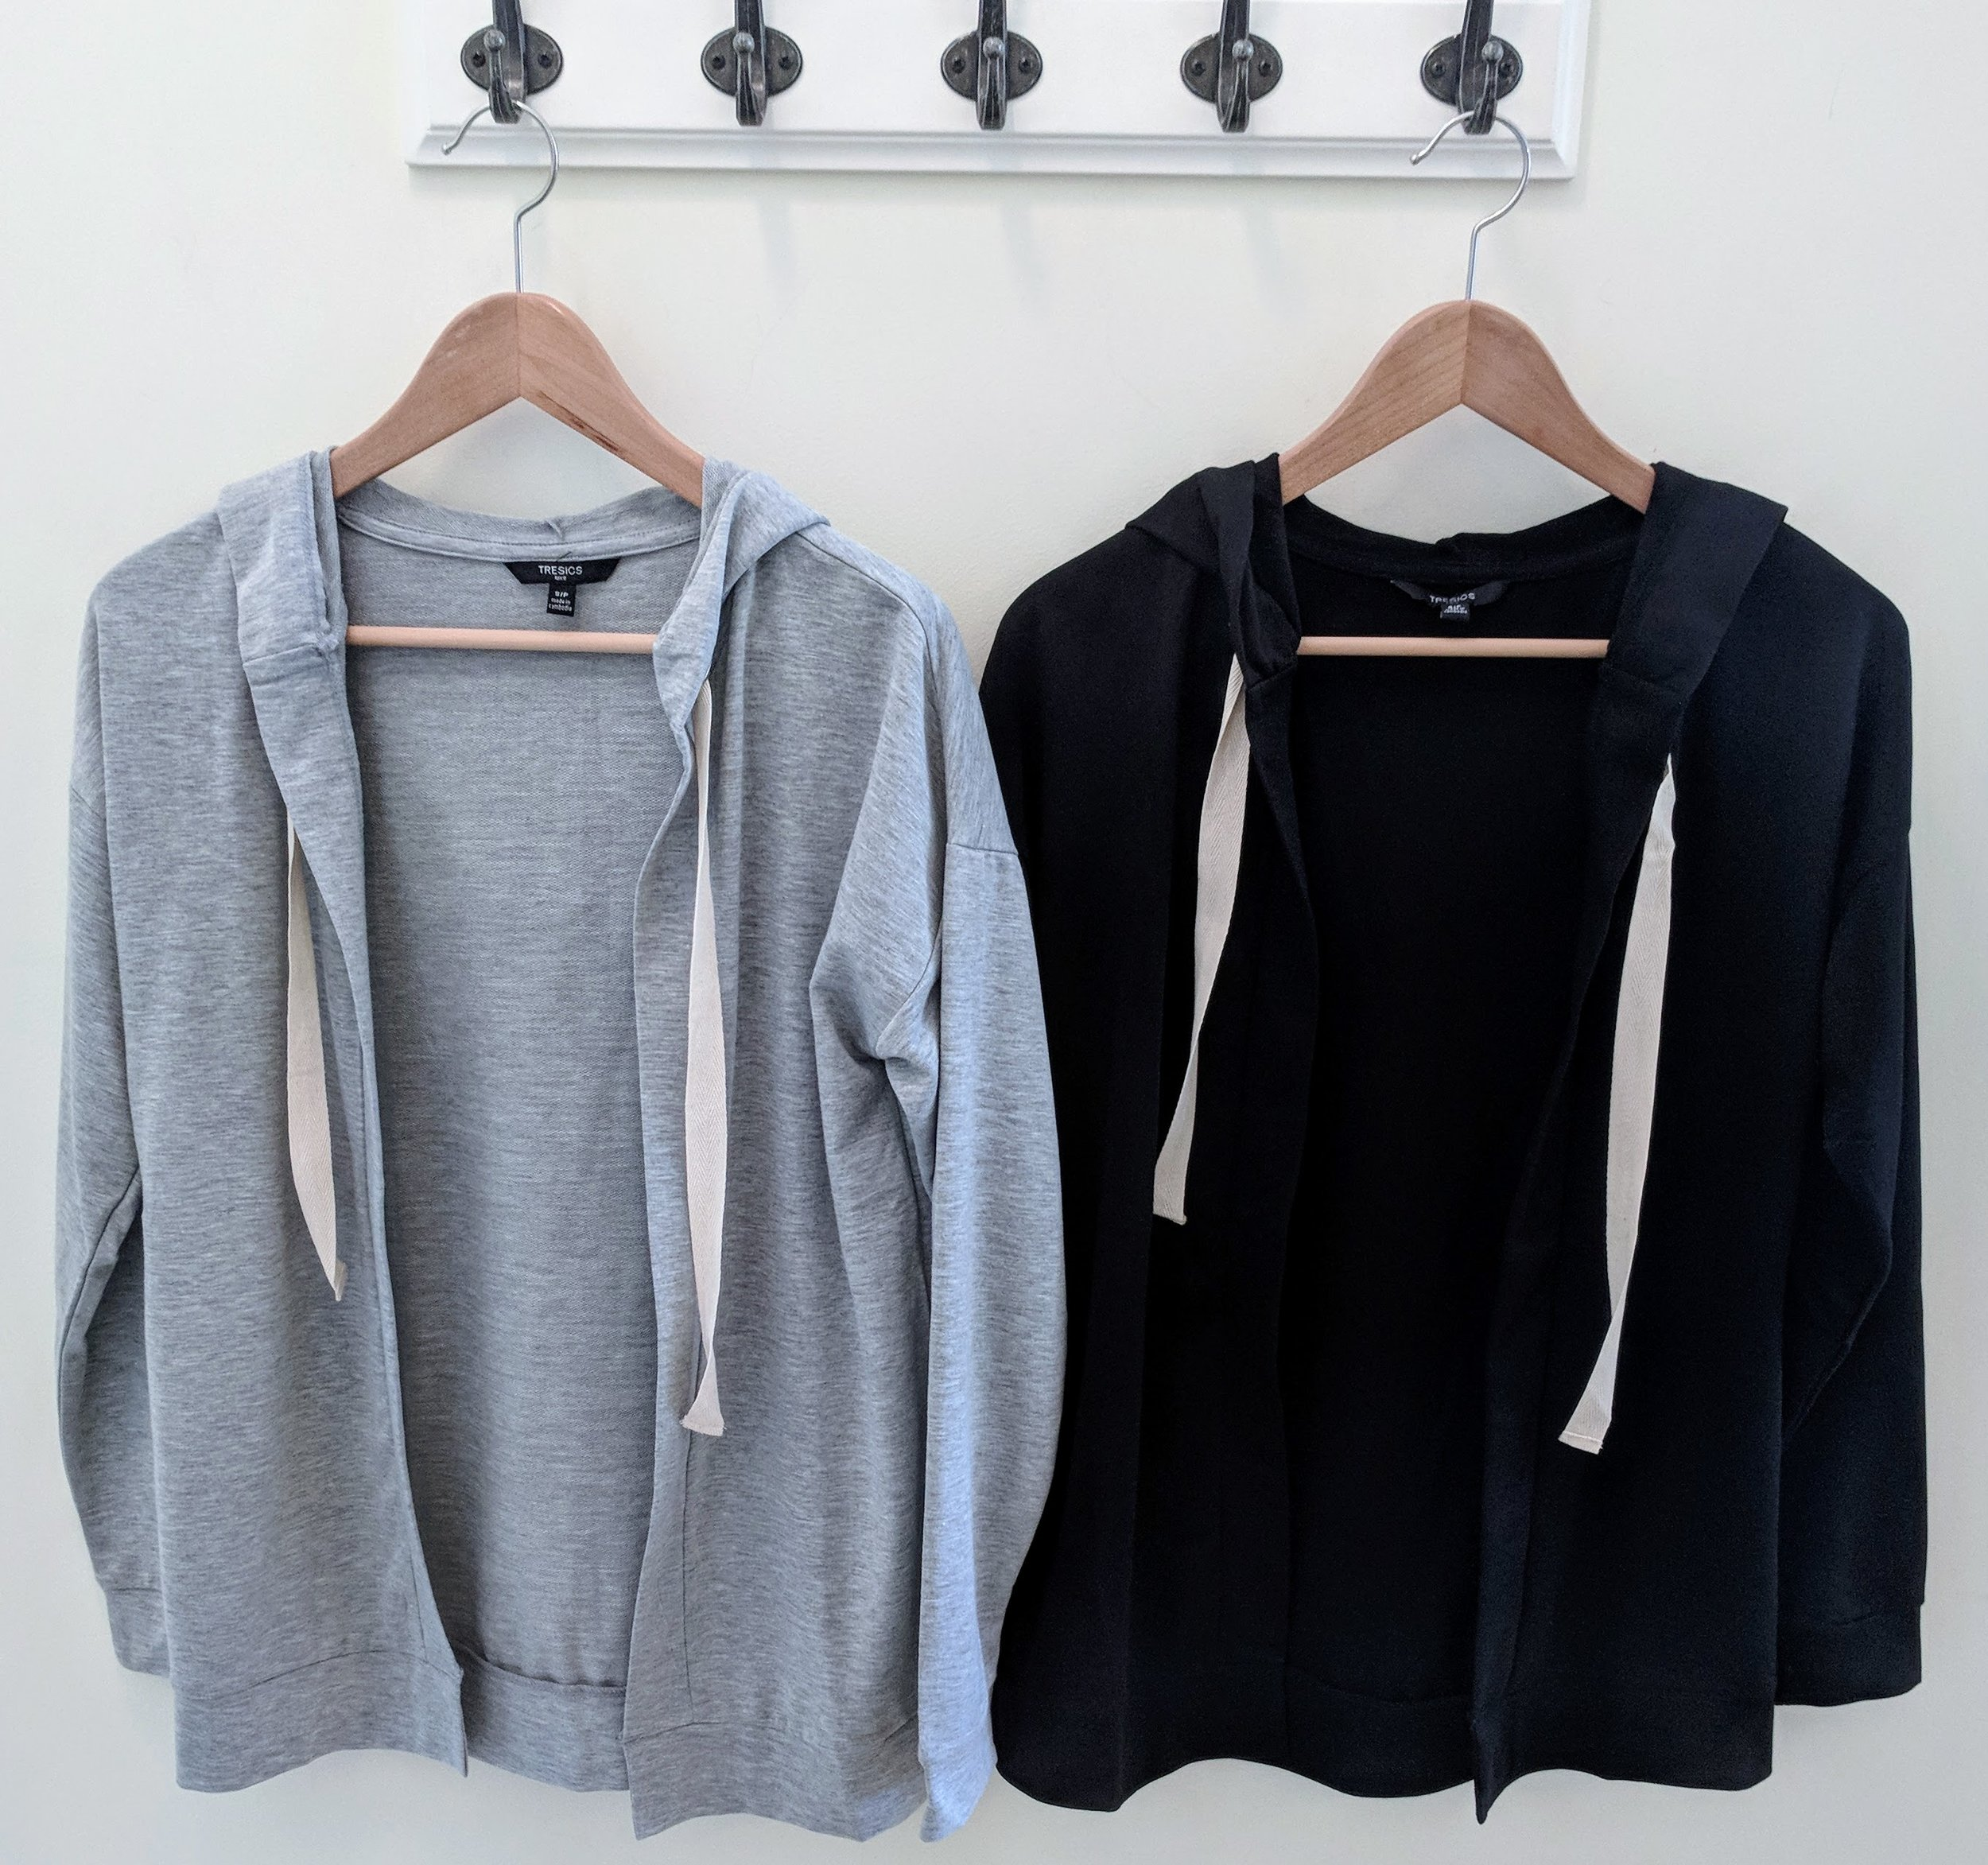 Grey and Black Long Sleeve Cardigan with Hood and Pockets